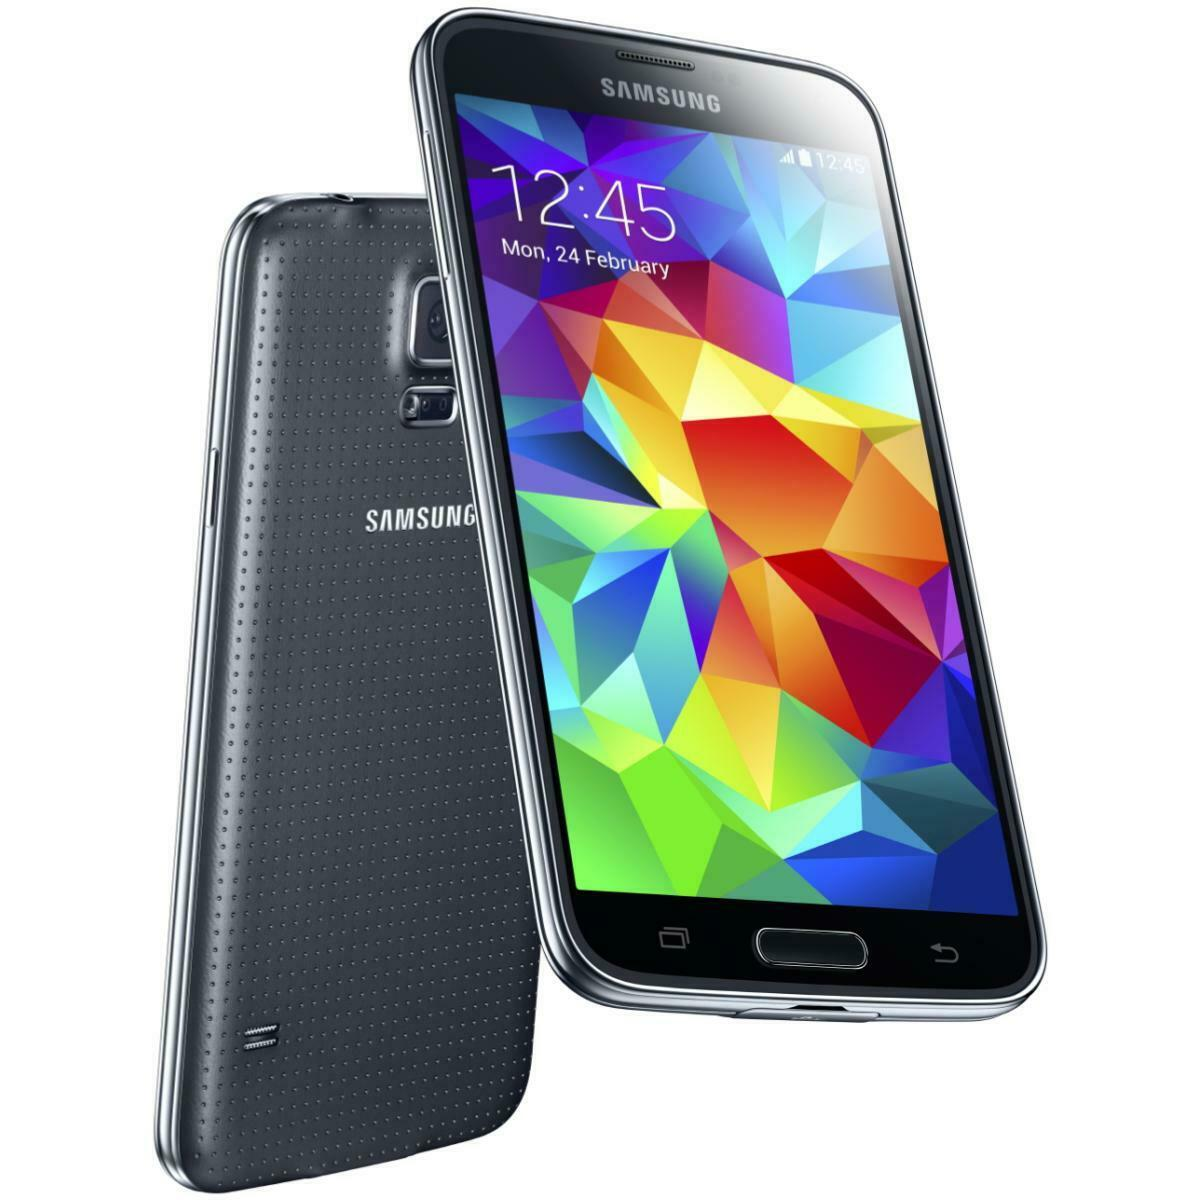 Android Phone - Samsung Galaxy S5 G900V 16GB Verizon GSM Unlocked AT&T T-Mobile Smartphone Black